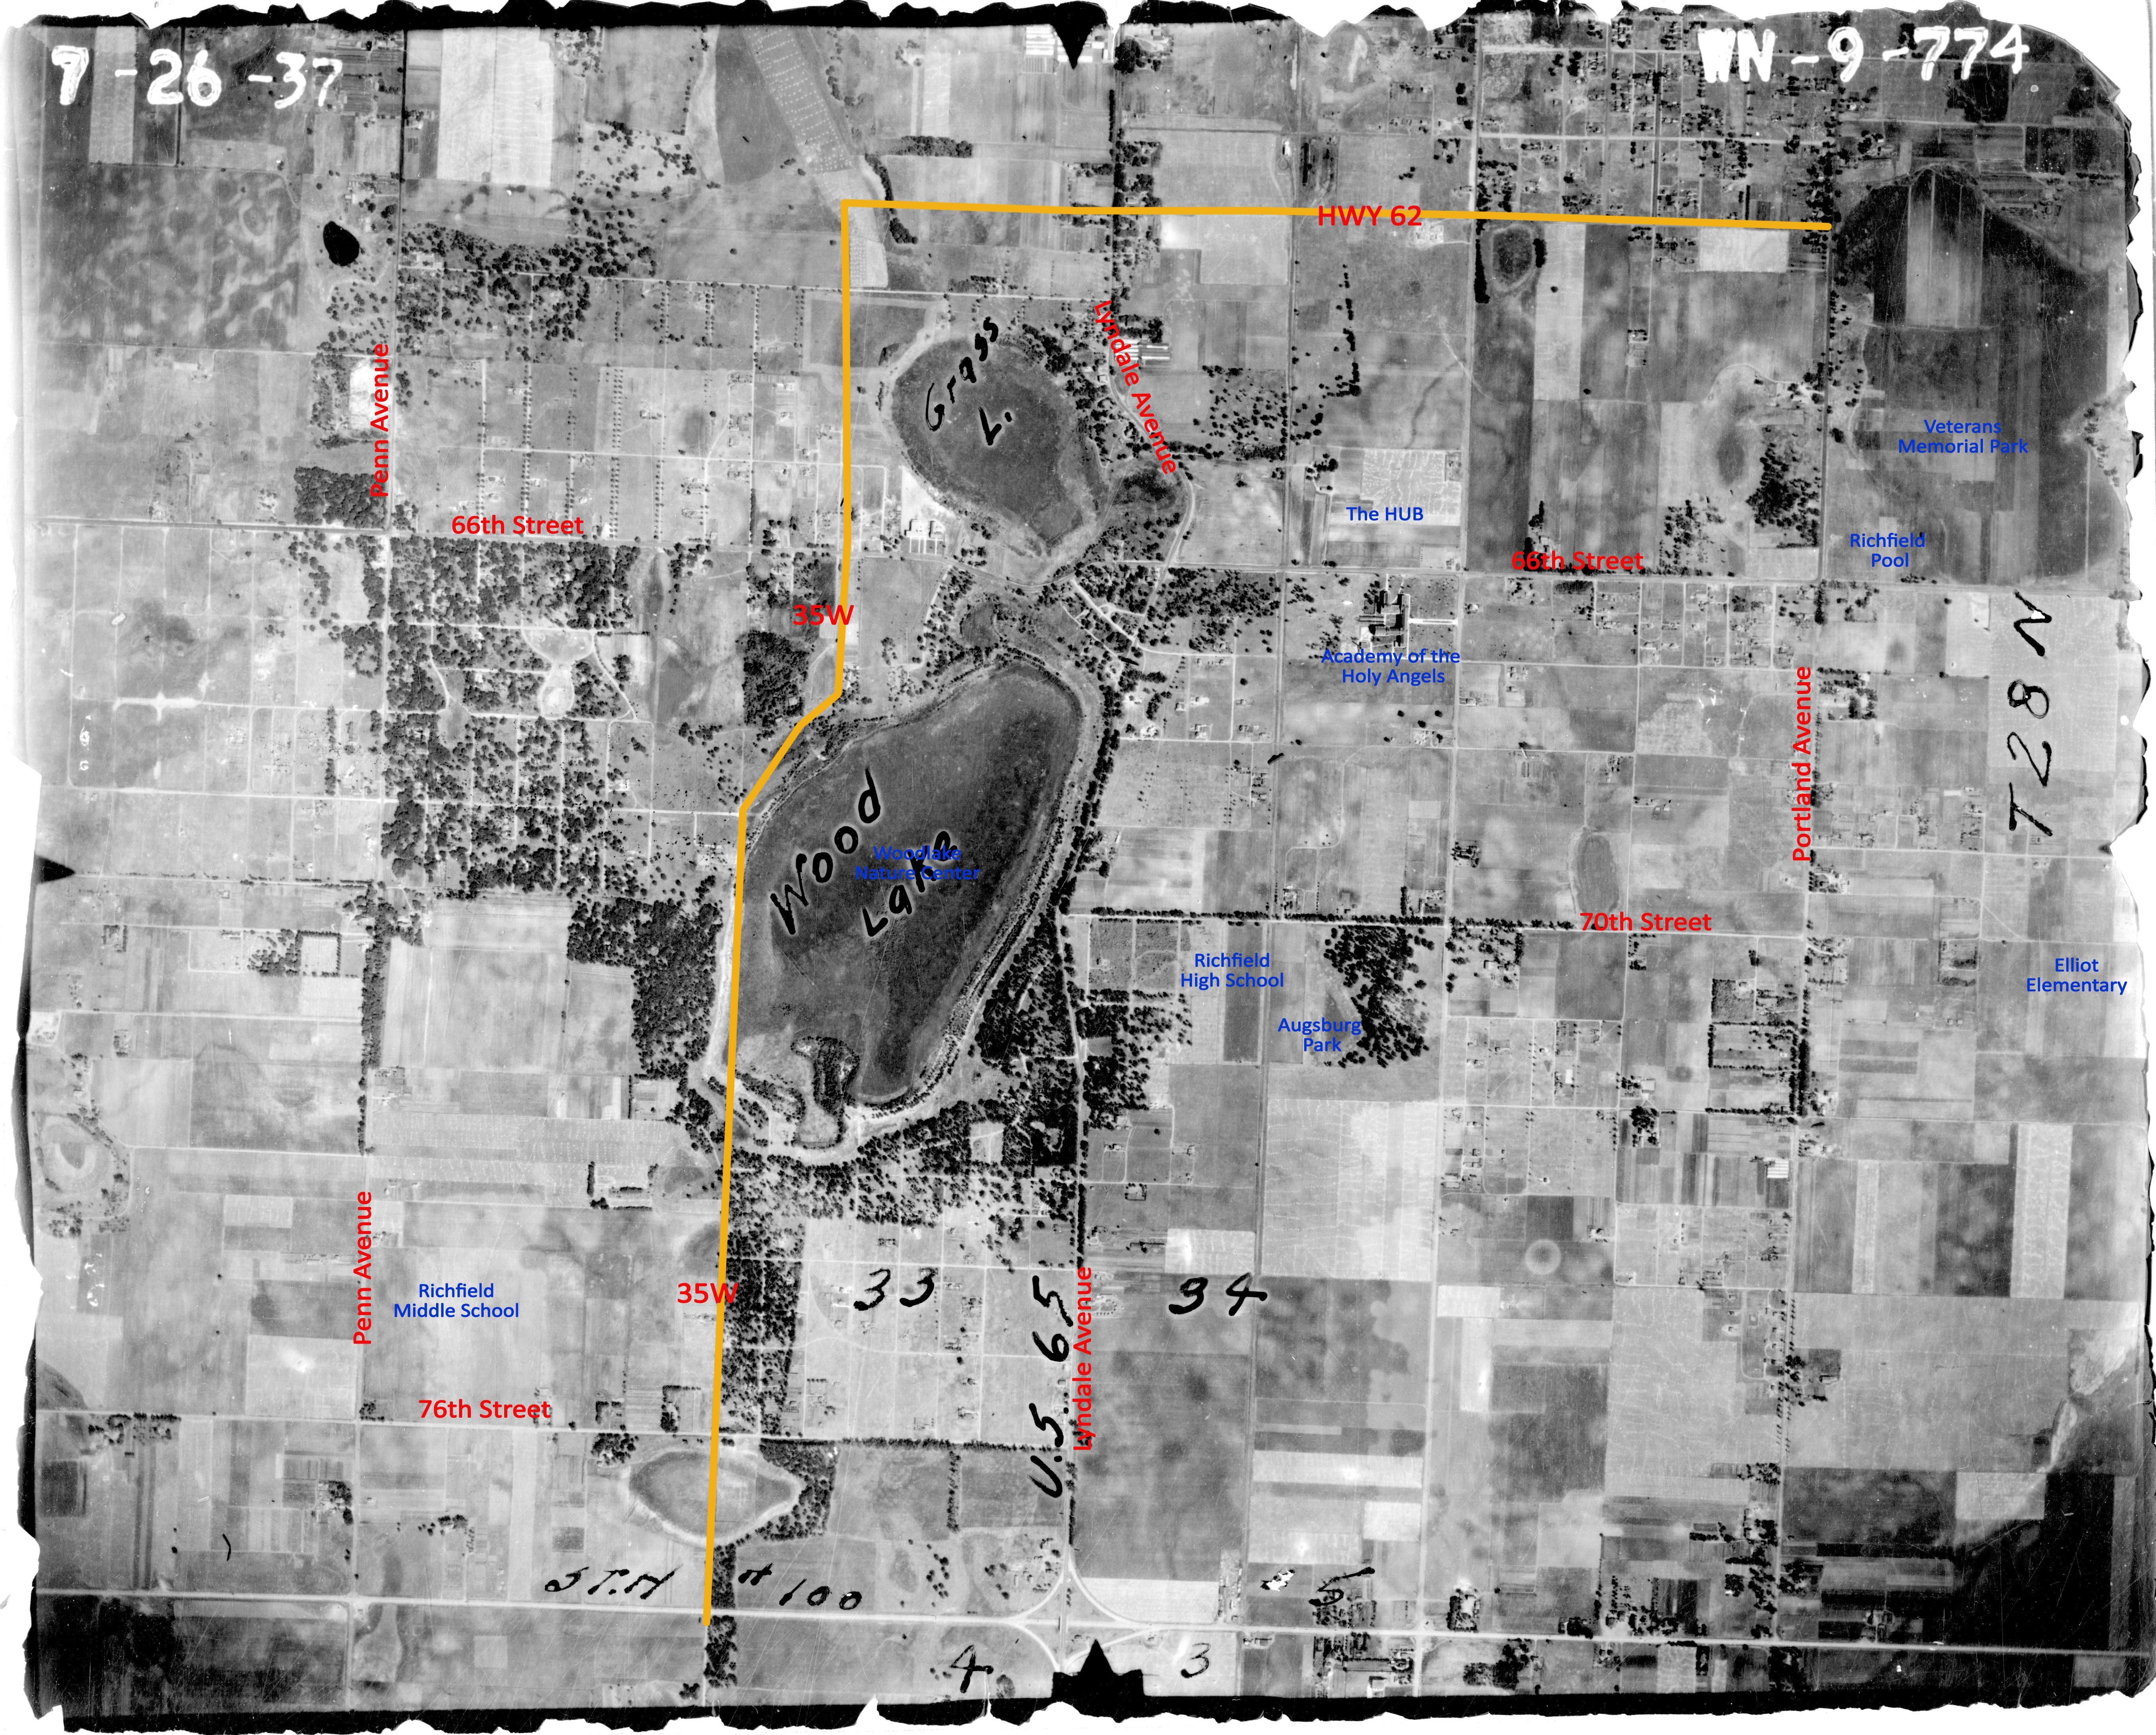 Found an old map of richfield mn circa 1937 and added